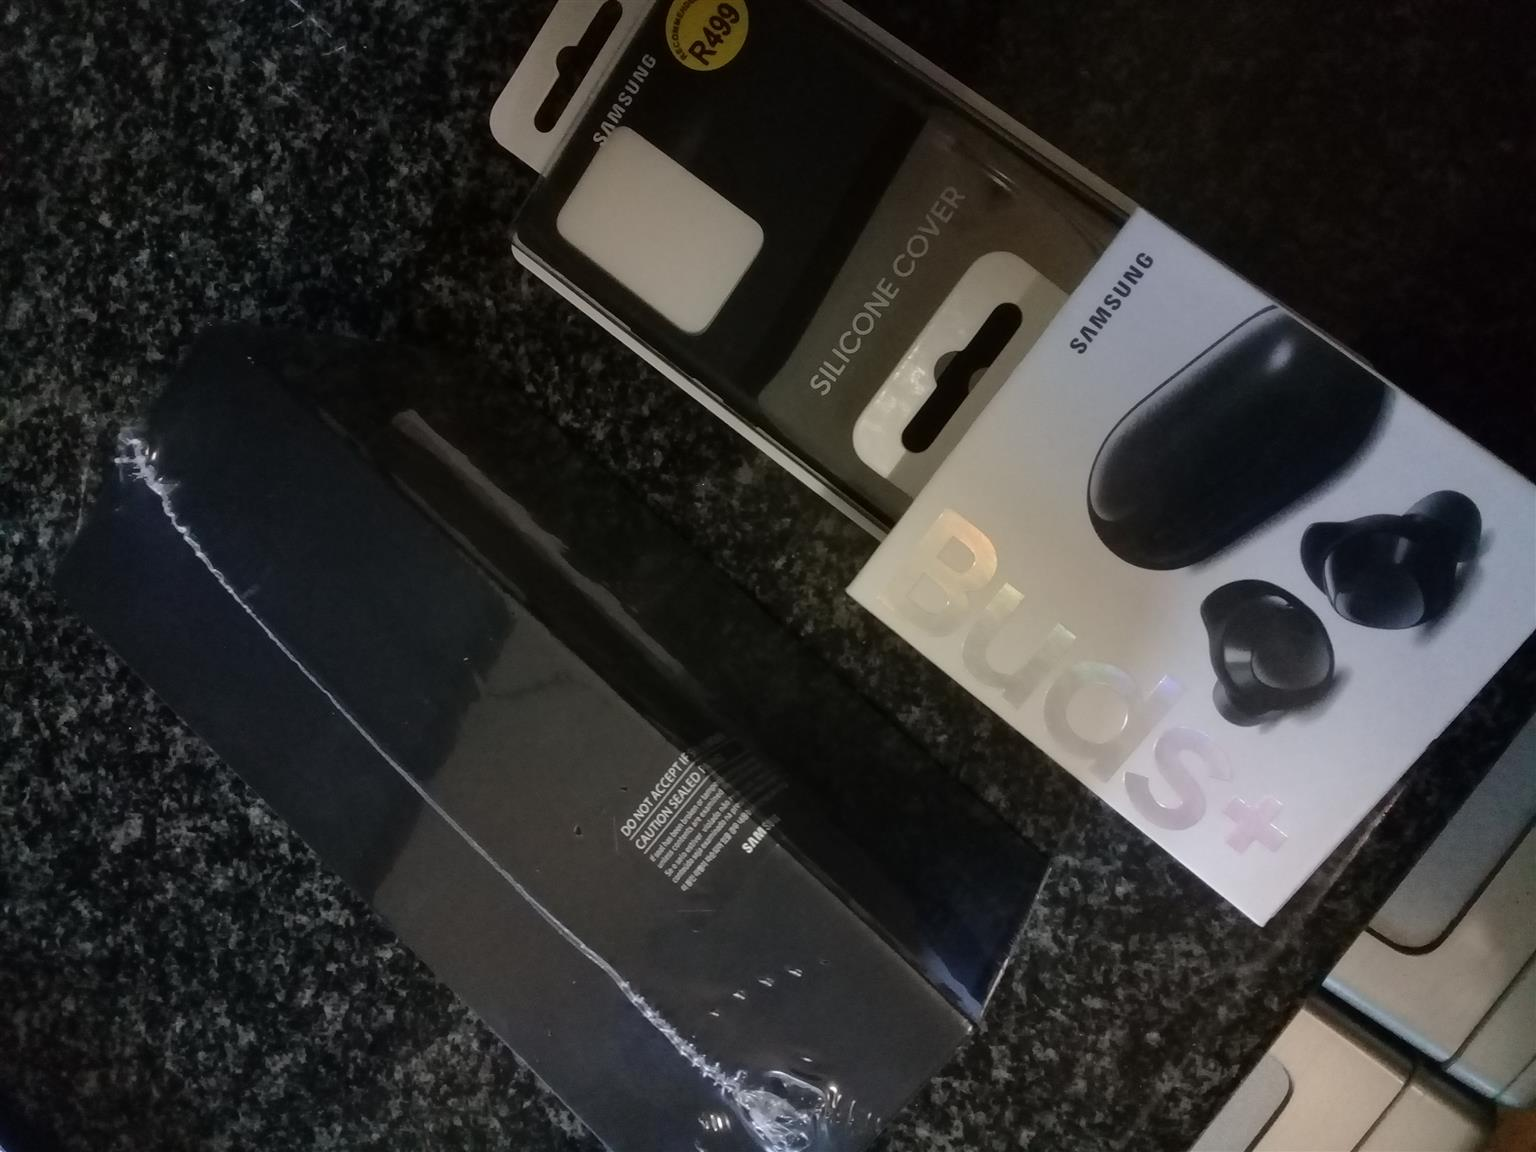 Brand new sealed in box Note 20 ultra 256gb 5g dual sim and cover and earbuds all samsung